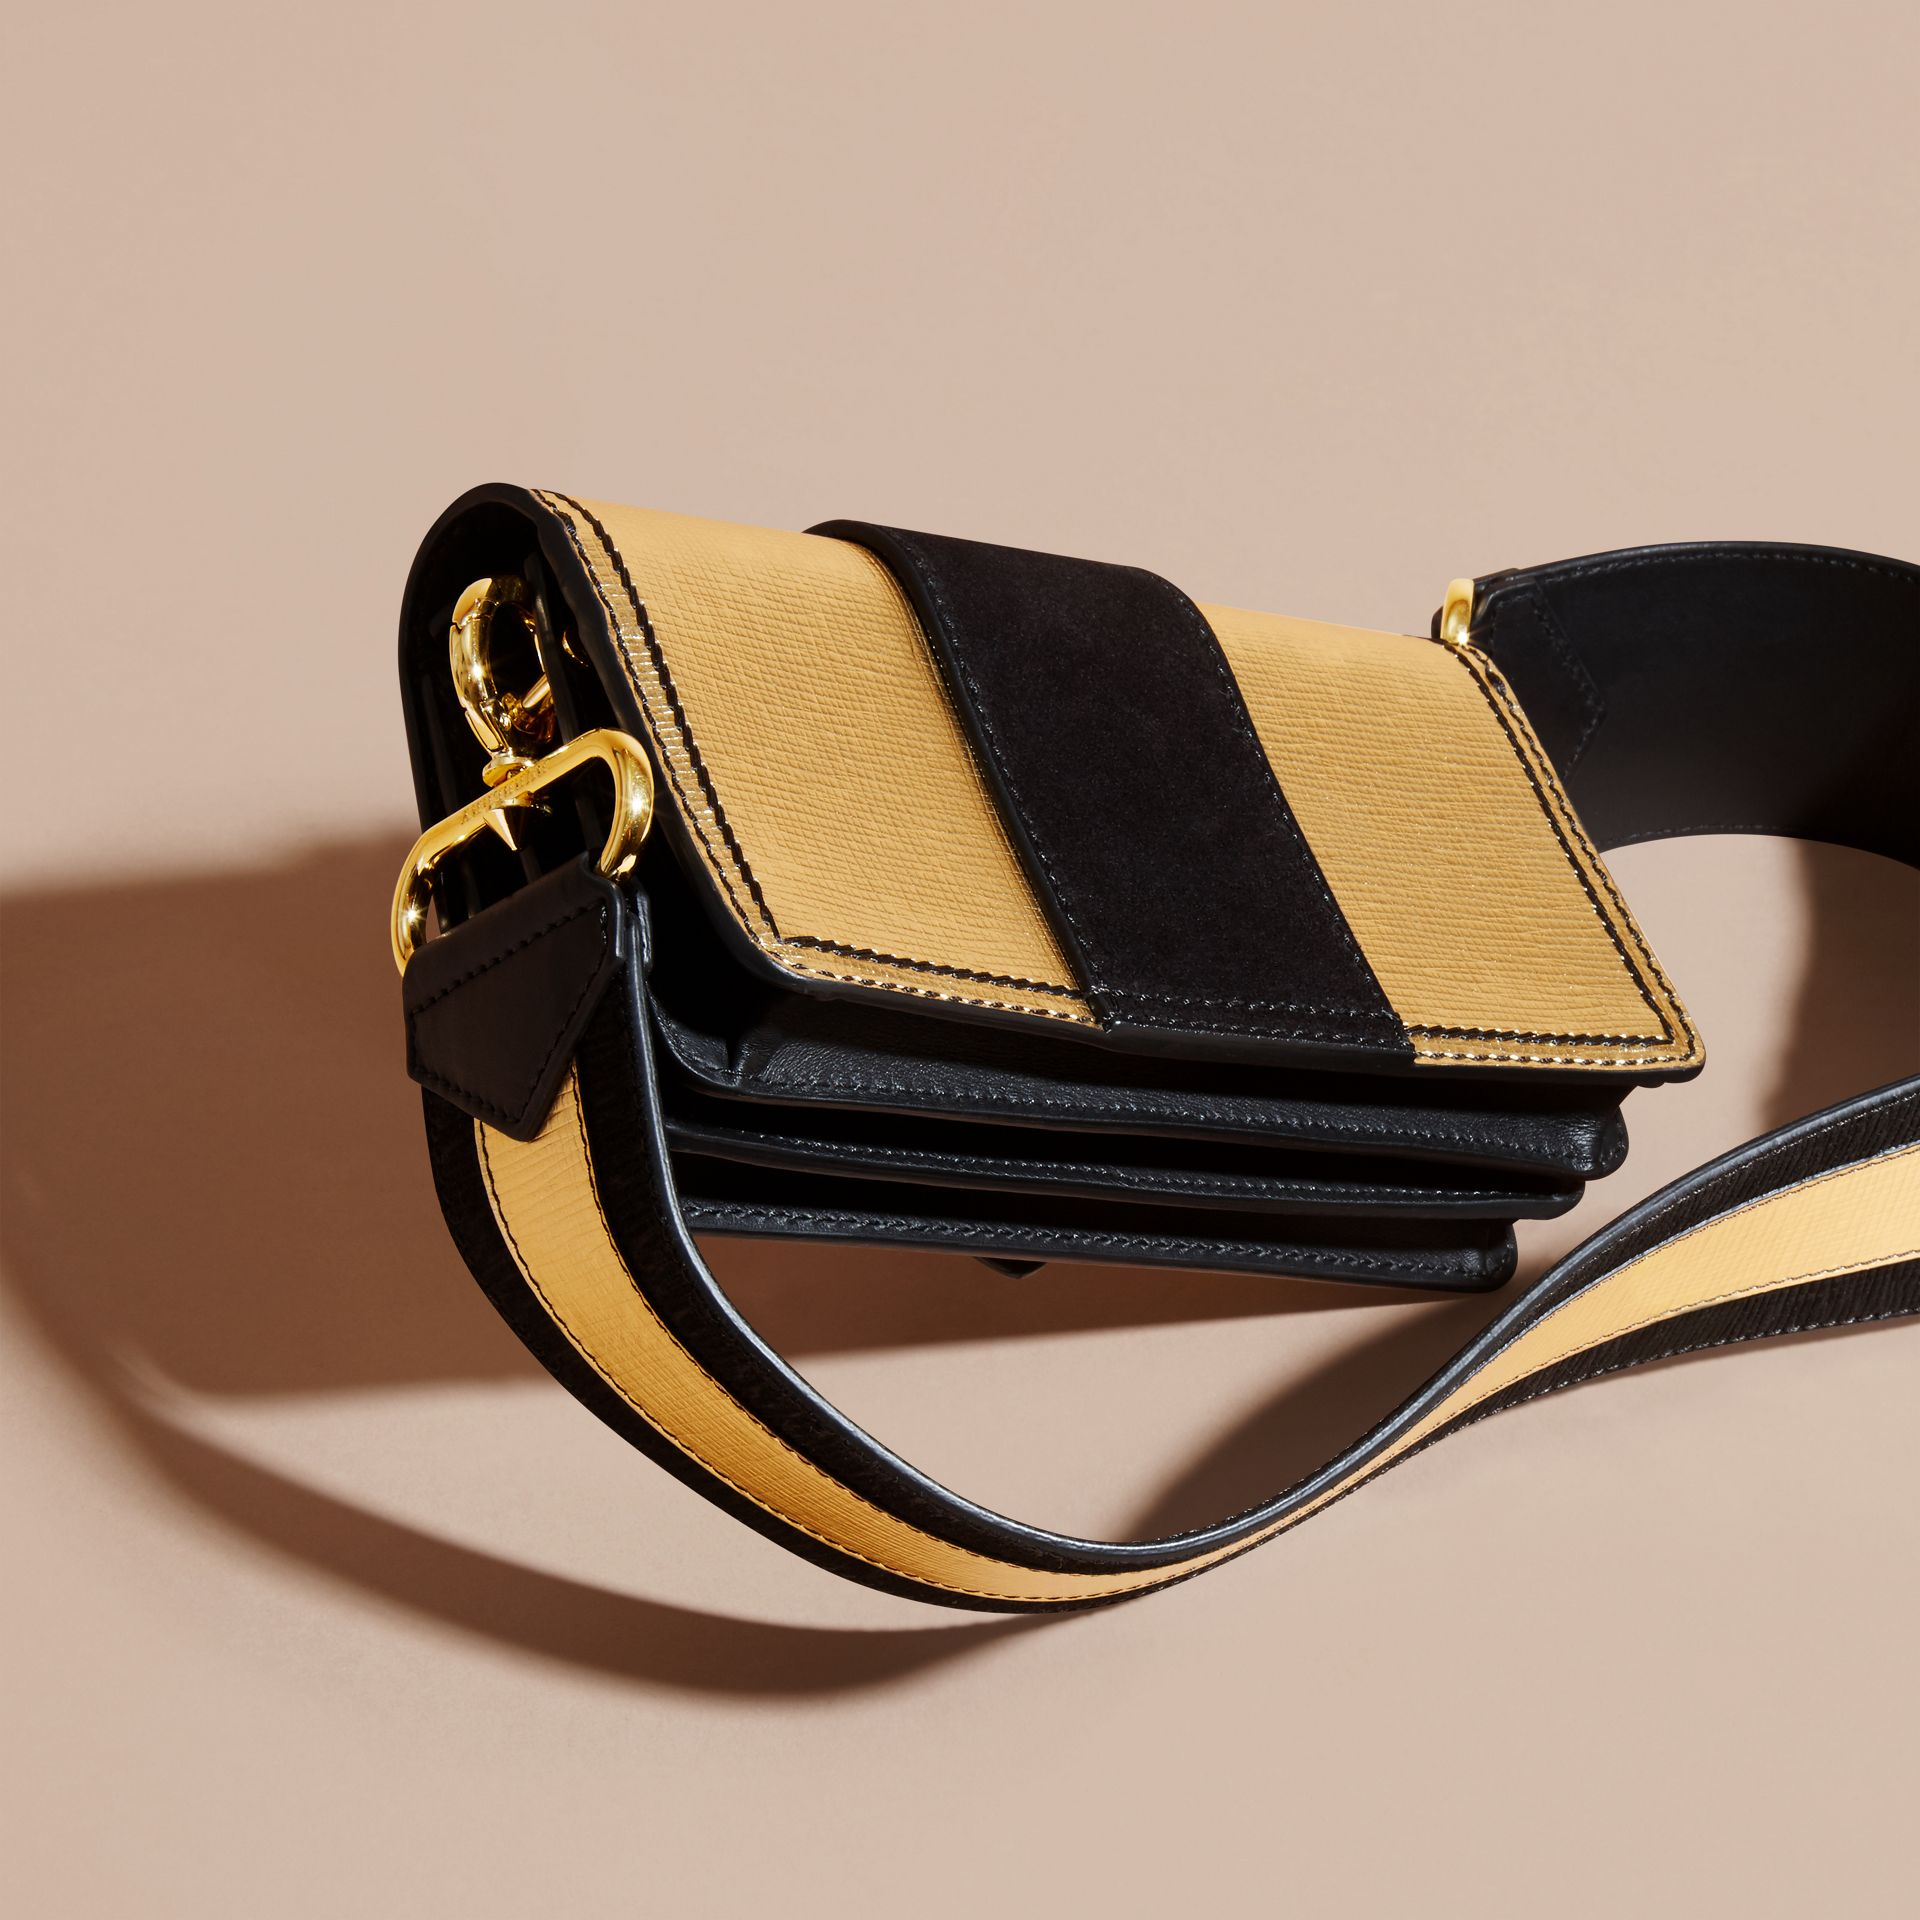 Gold/black The Small Buckle Bag in Metallic Leather and Suede - gallery image 5